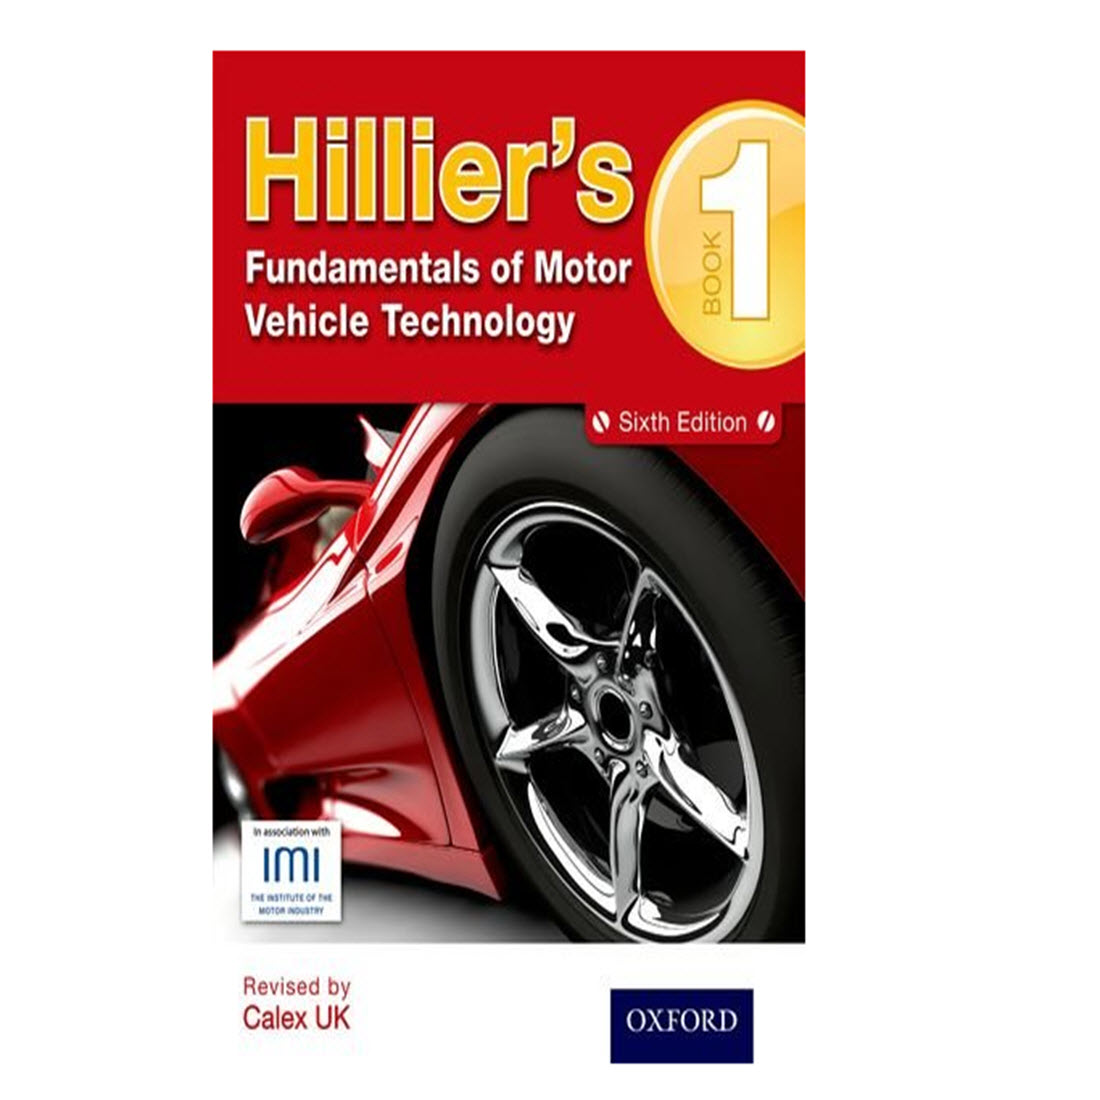 Hillers motor vechicle technology